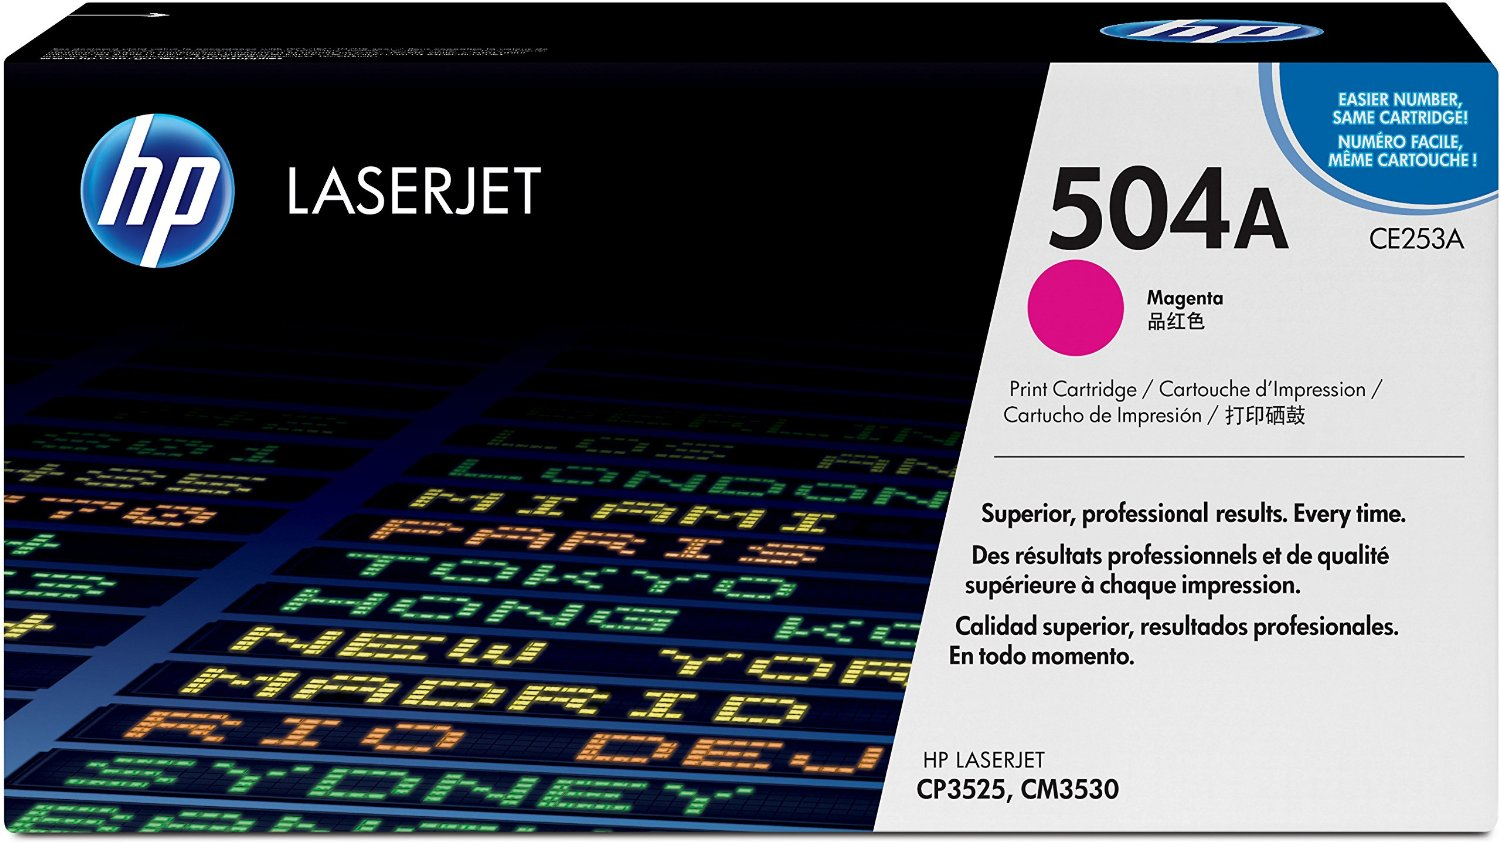 HP 504A Magenta Toner Cartridge, CE253A